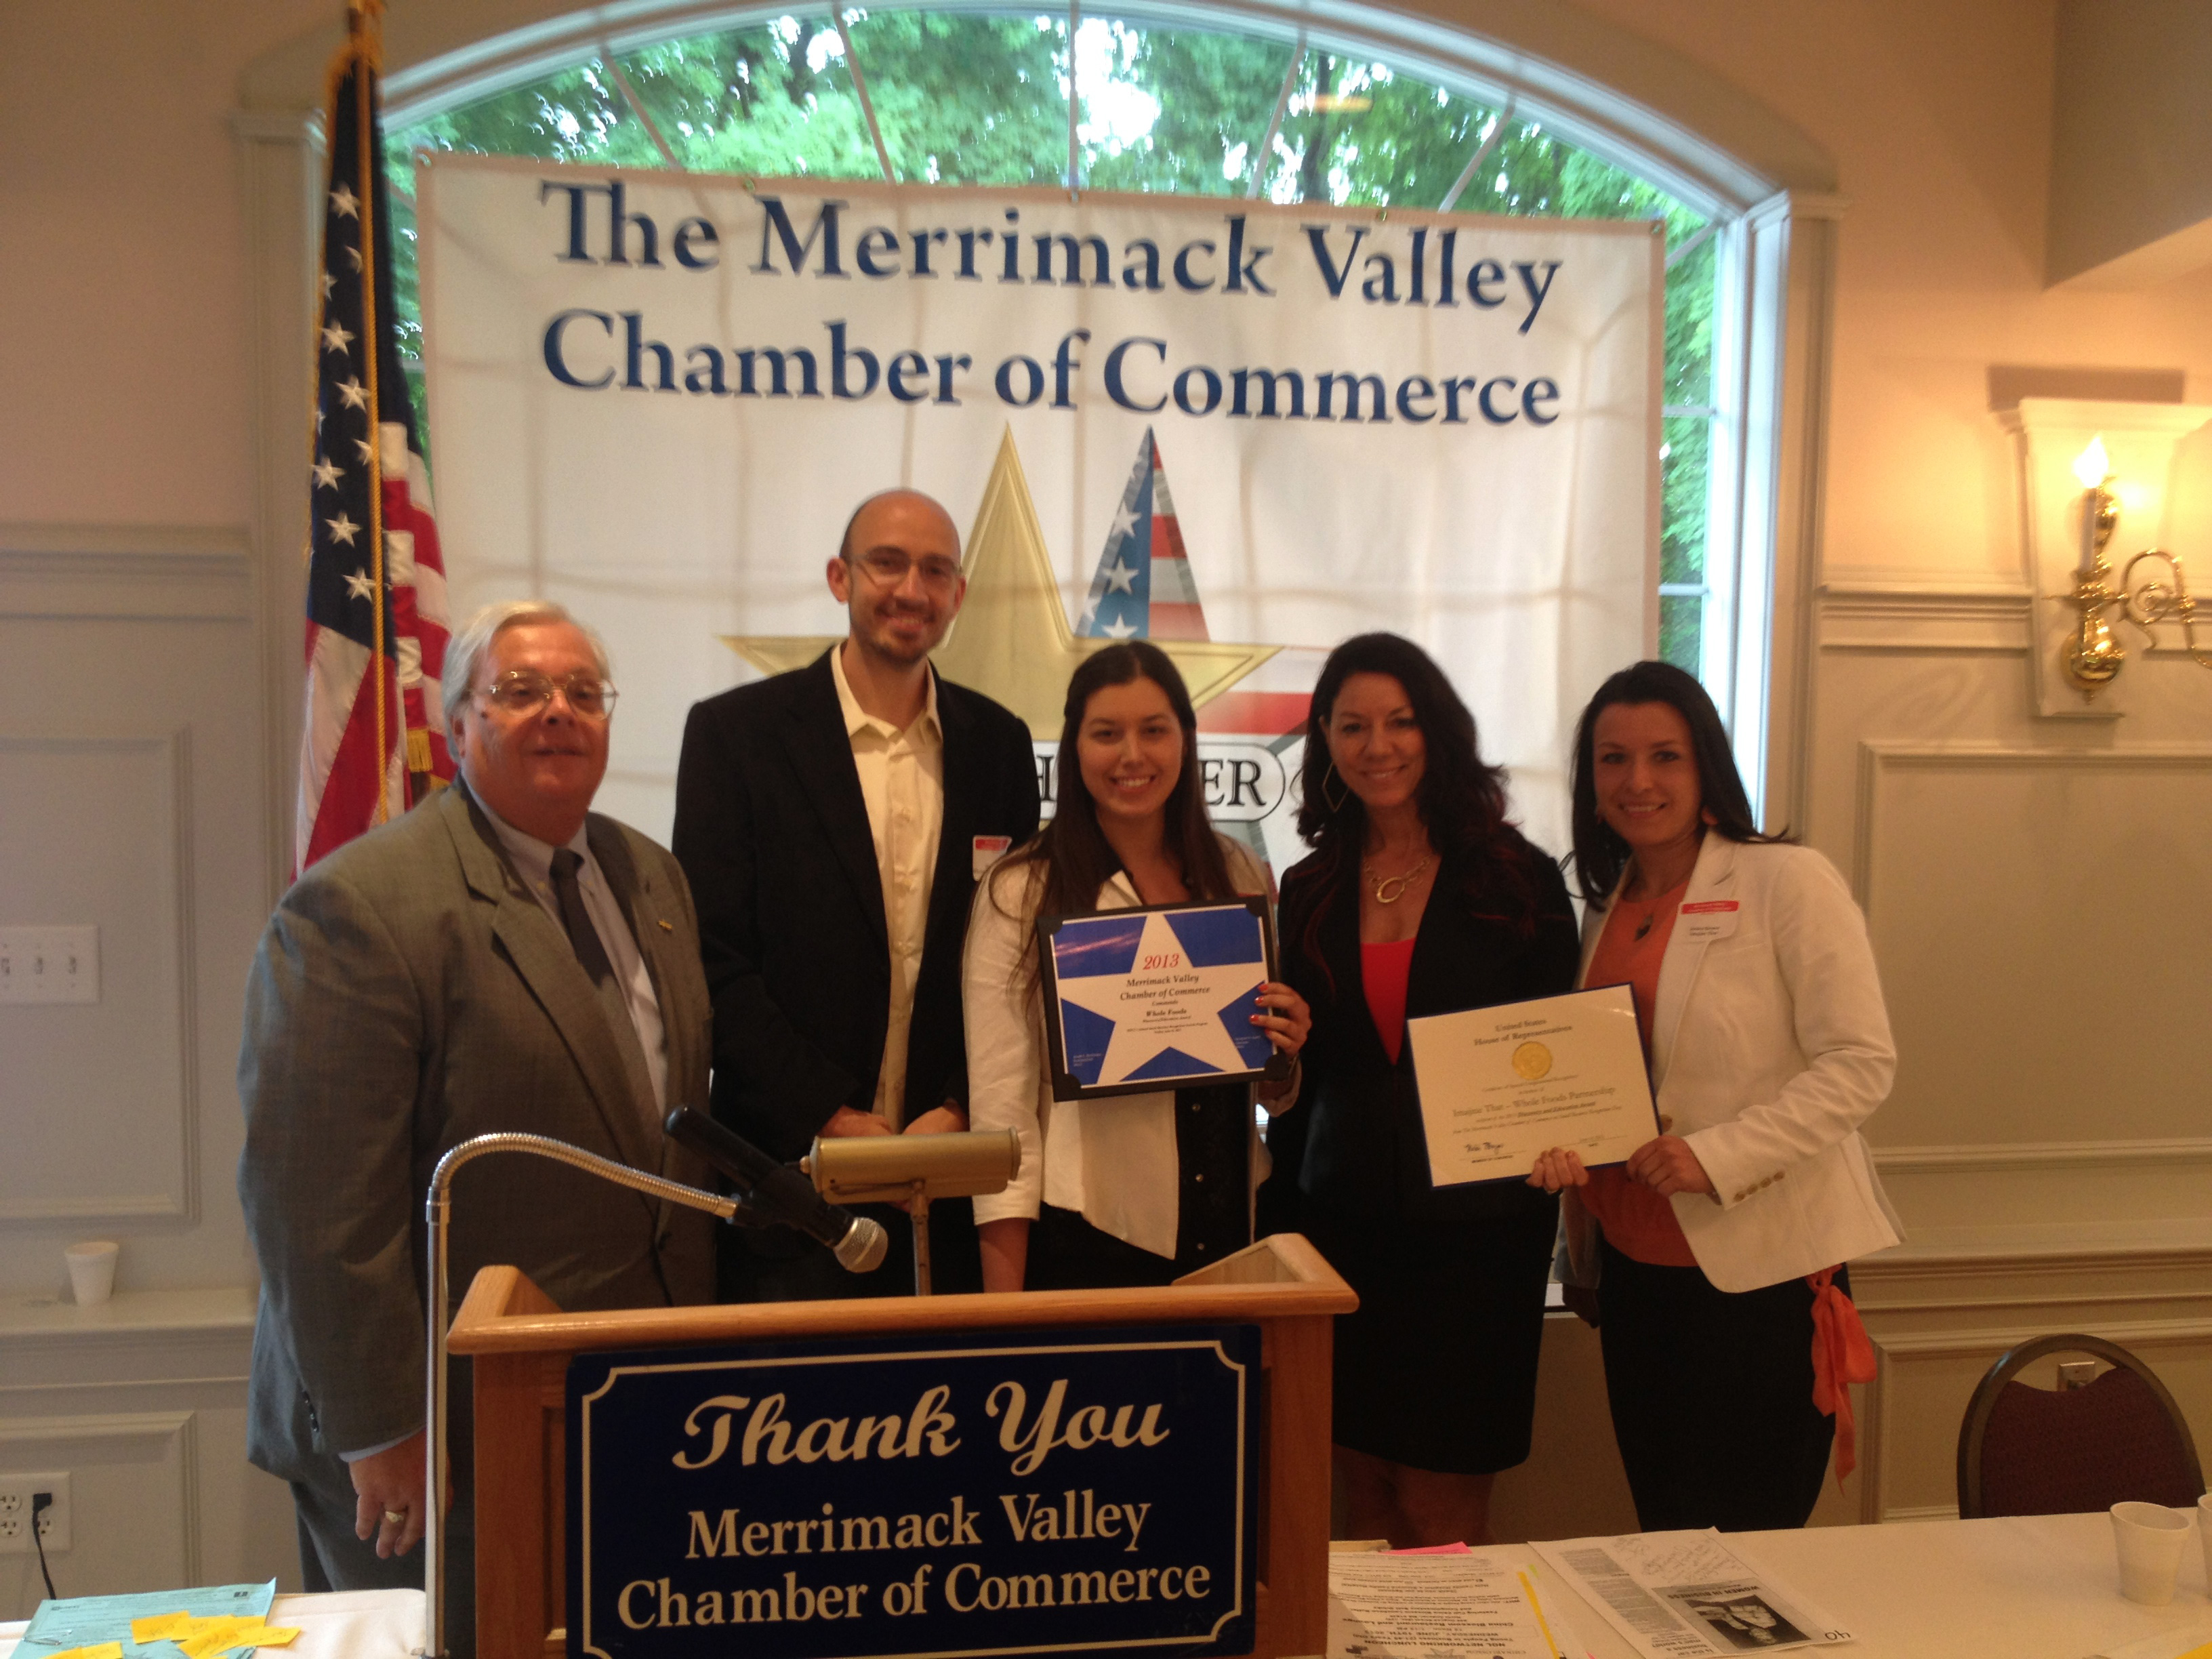 Merrimack Valley Chamber of Commerce - Best Innovative Partnership Award